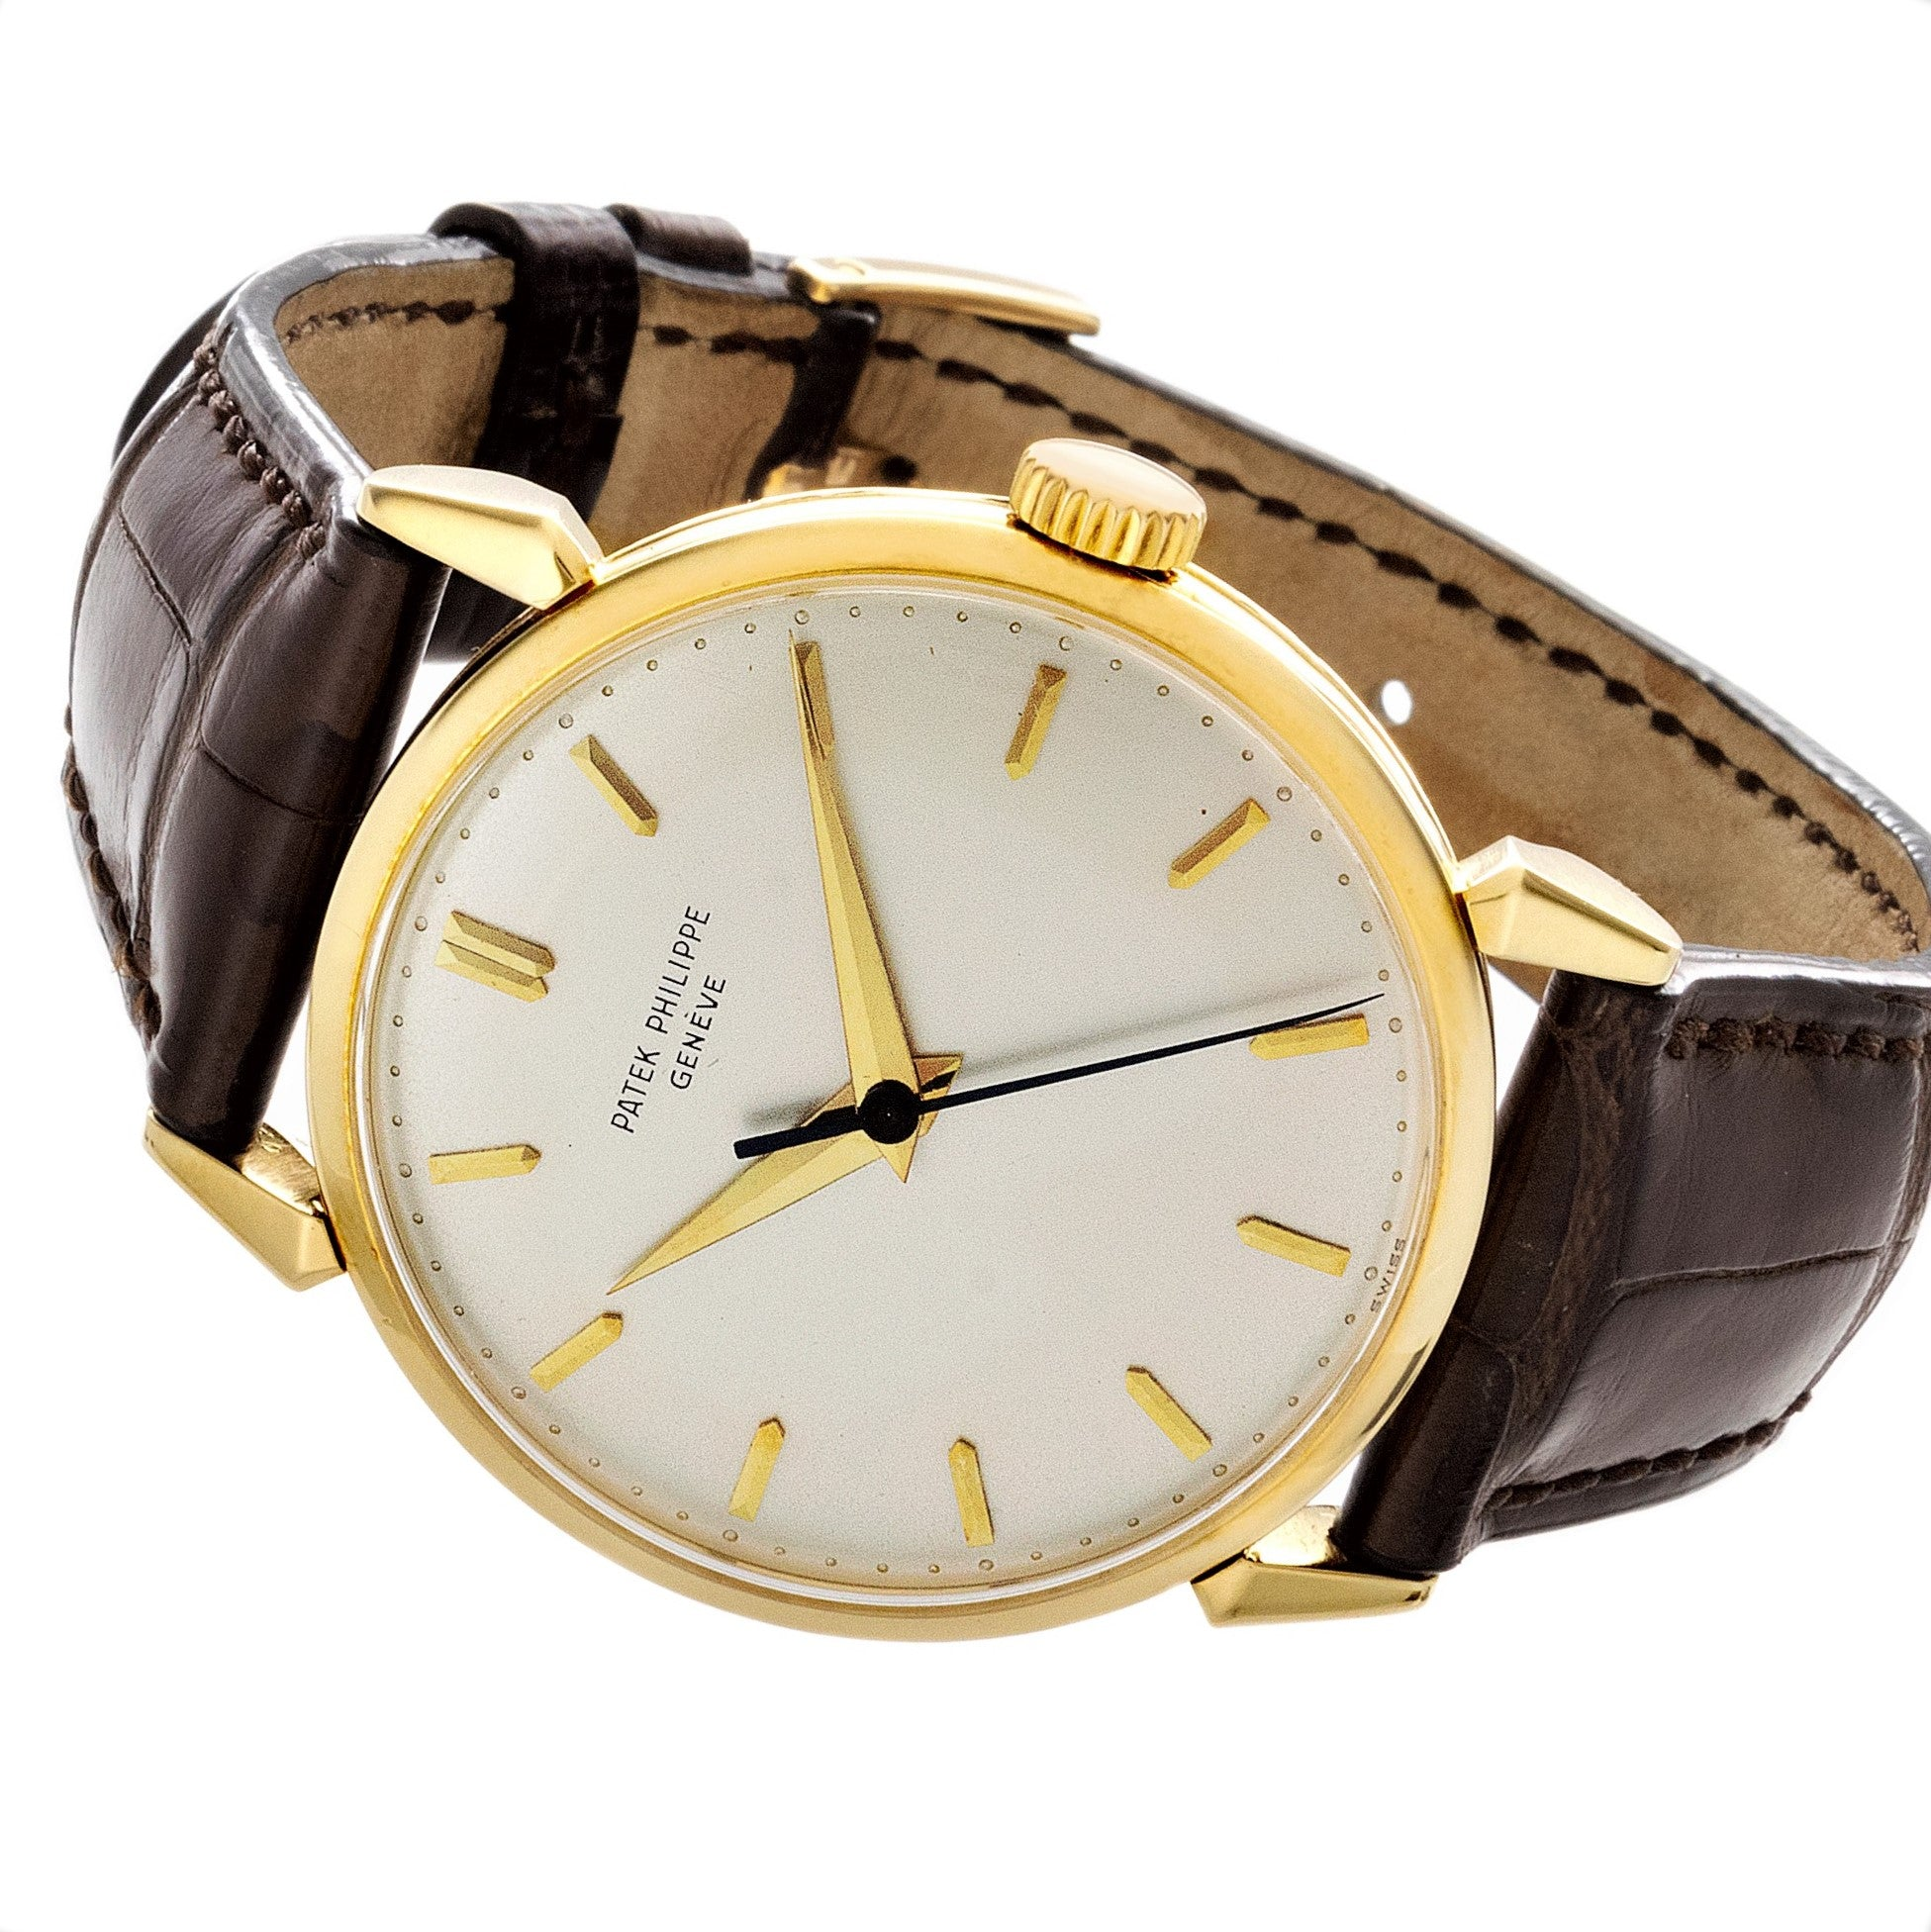 Patek Philippe 1578J Large Calatrava Watch